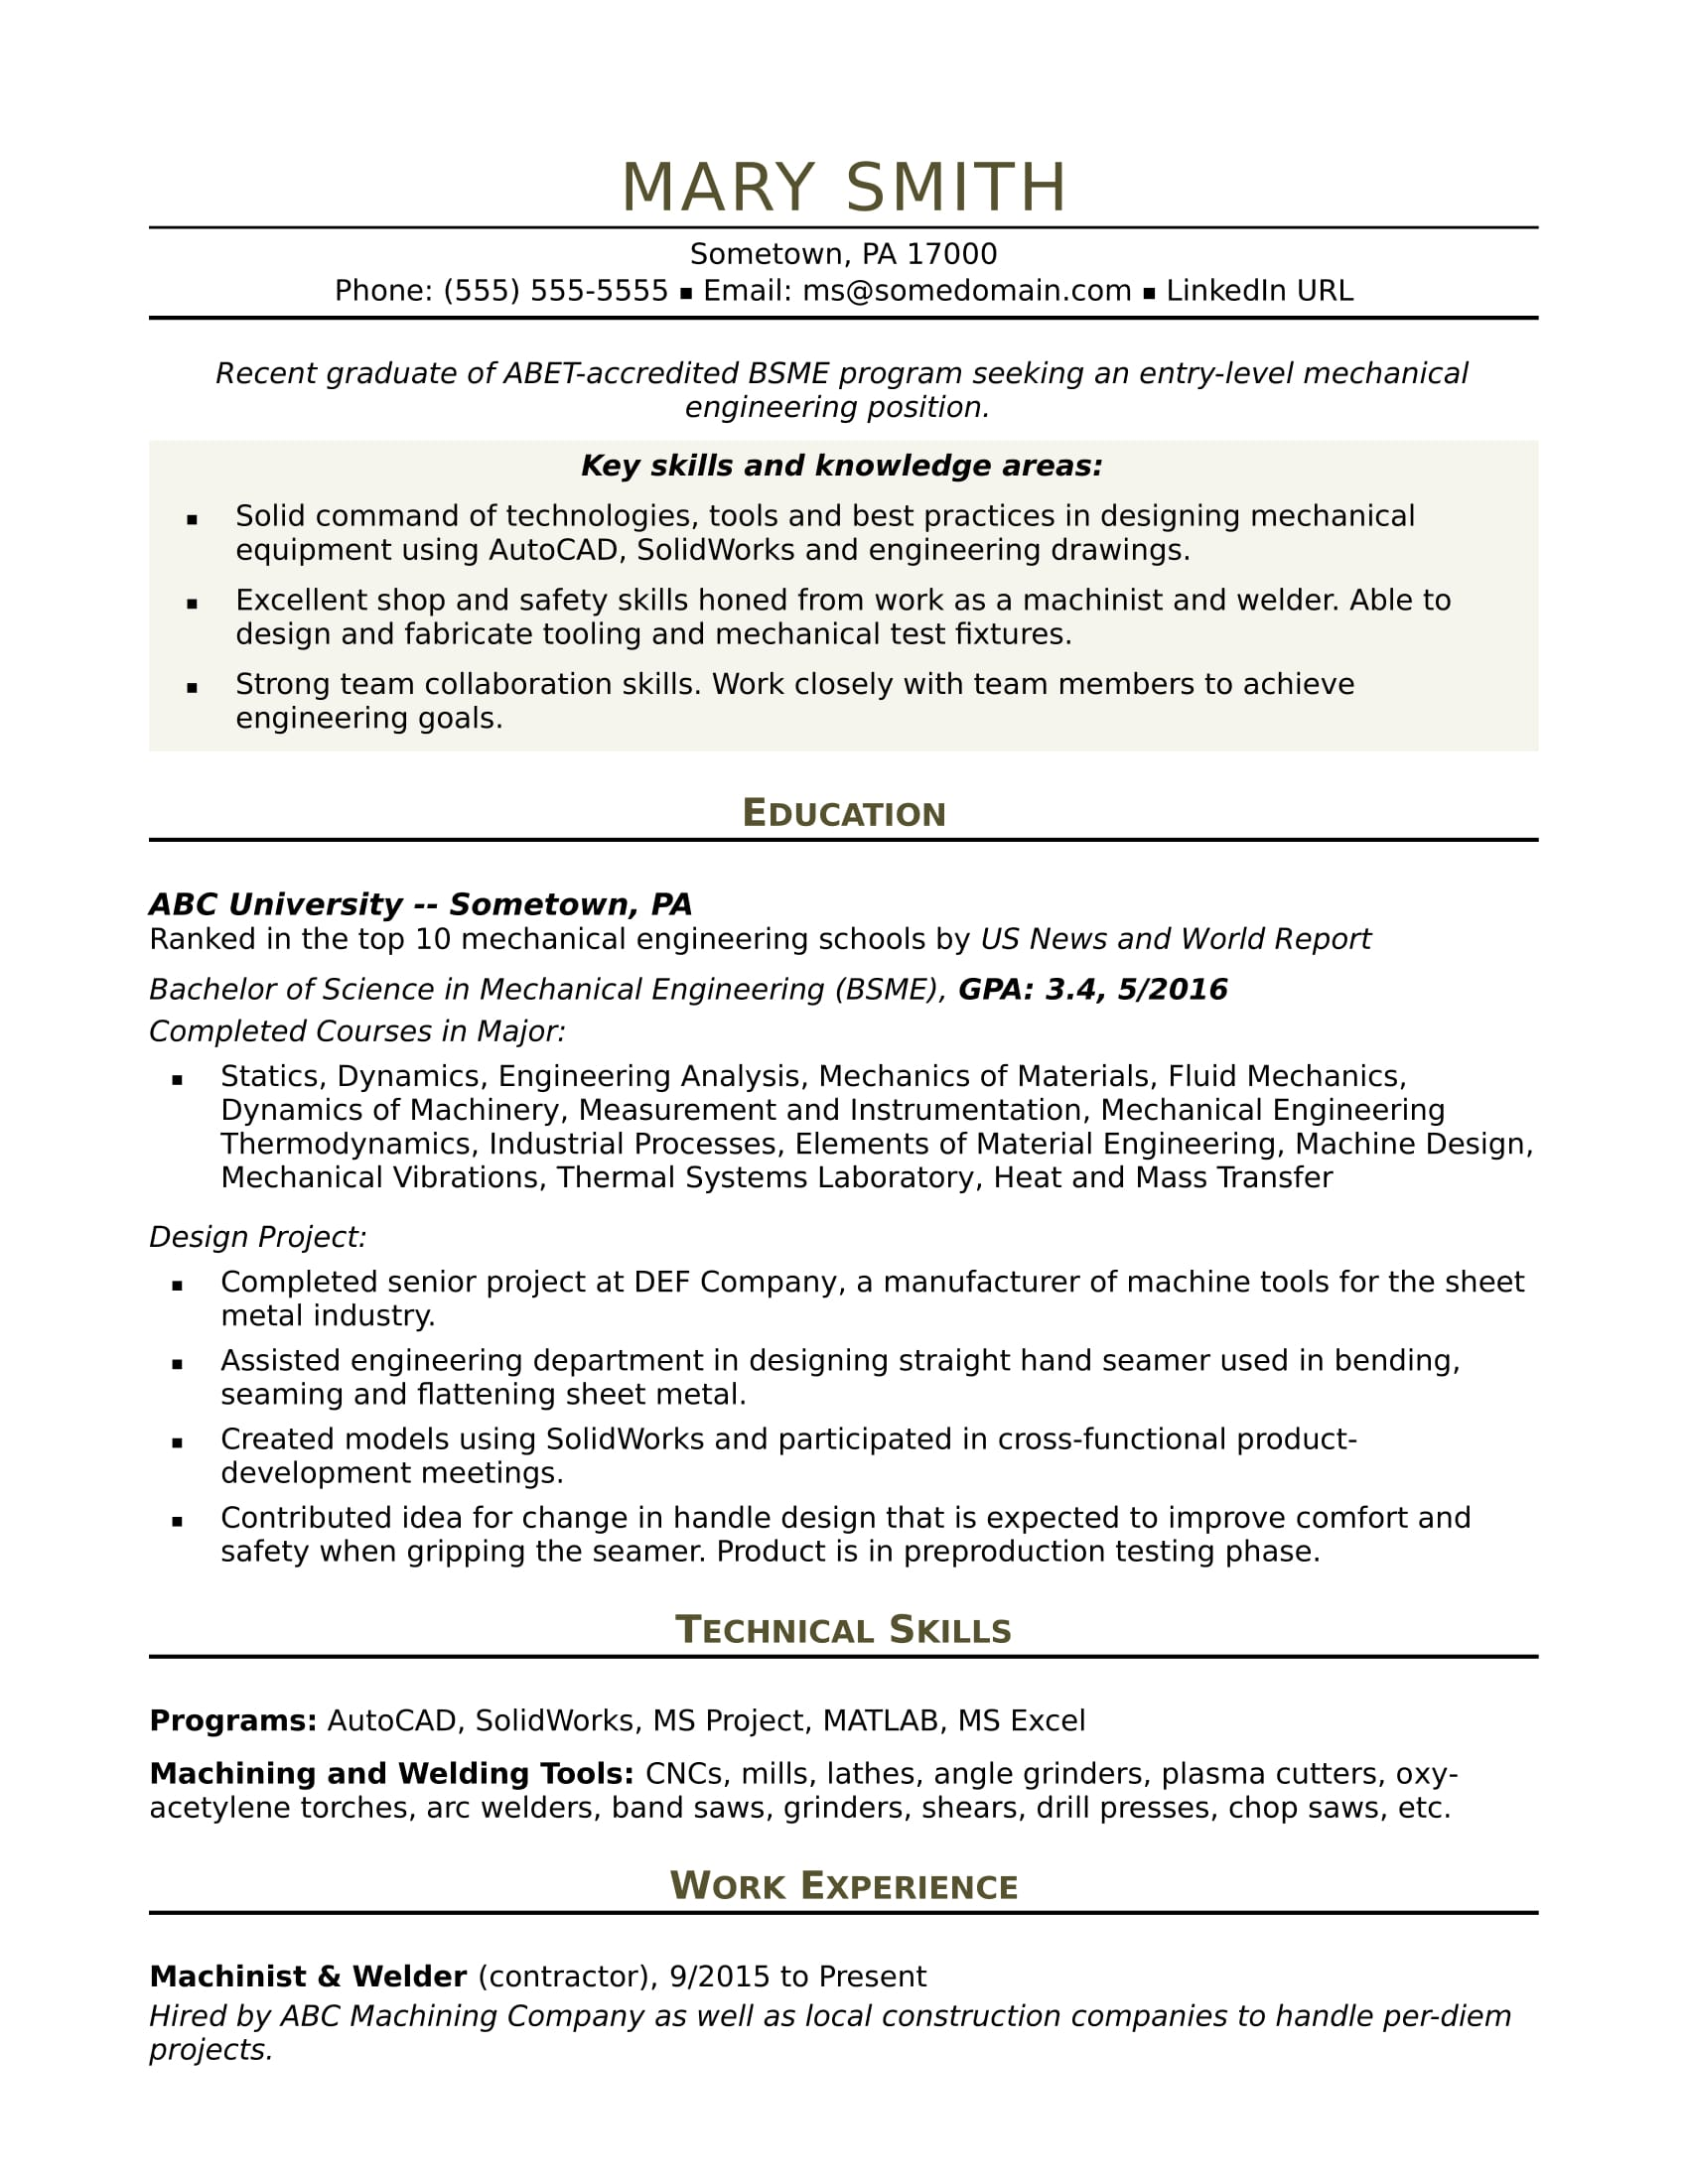 Sample resume for an entry level mechanical engineer monster sample resume for an entry level mechanical engineer maxwellsz